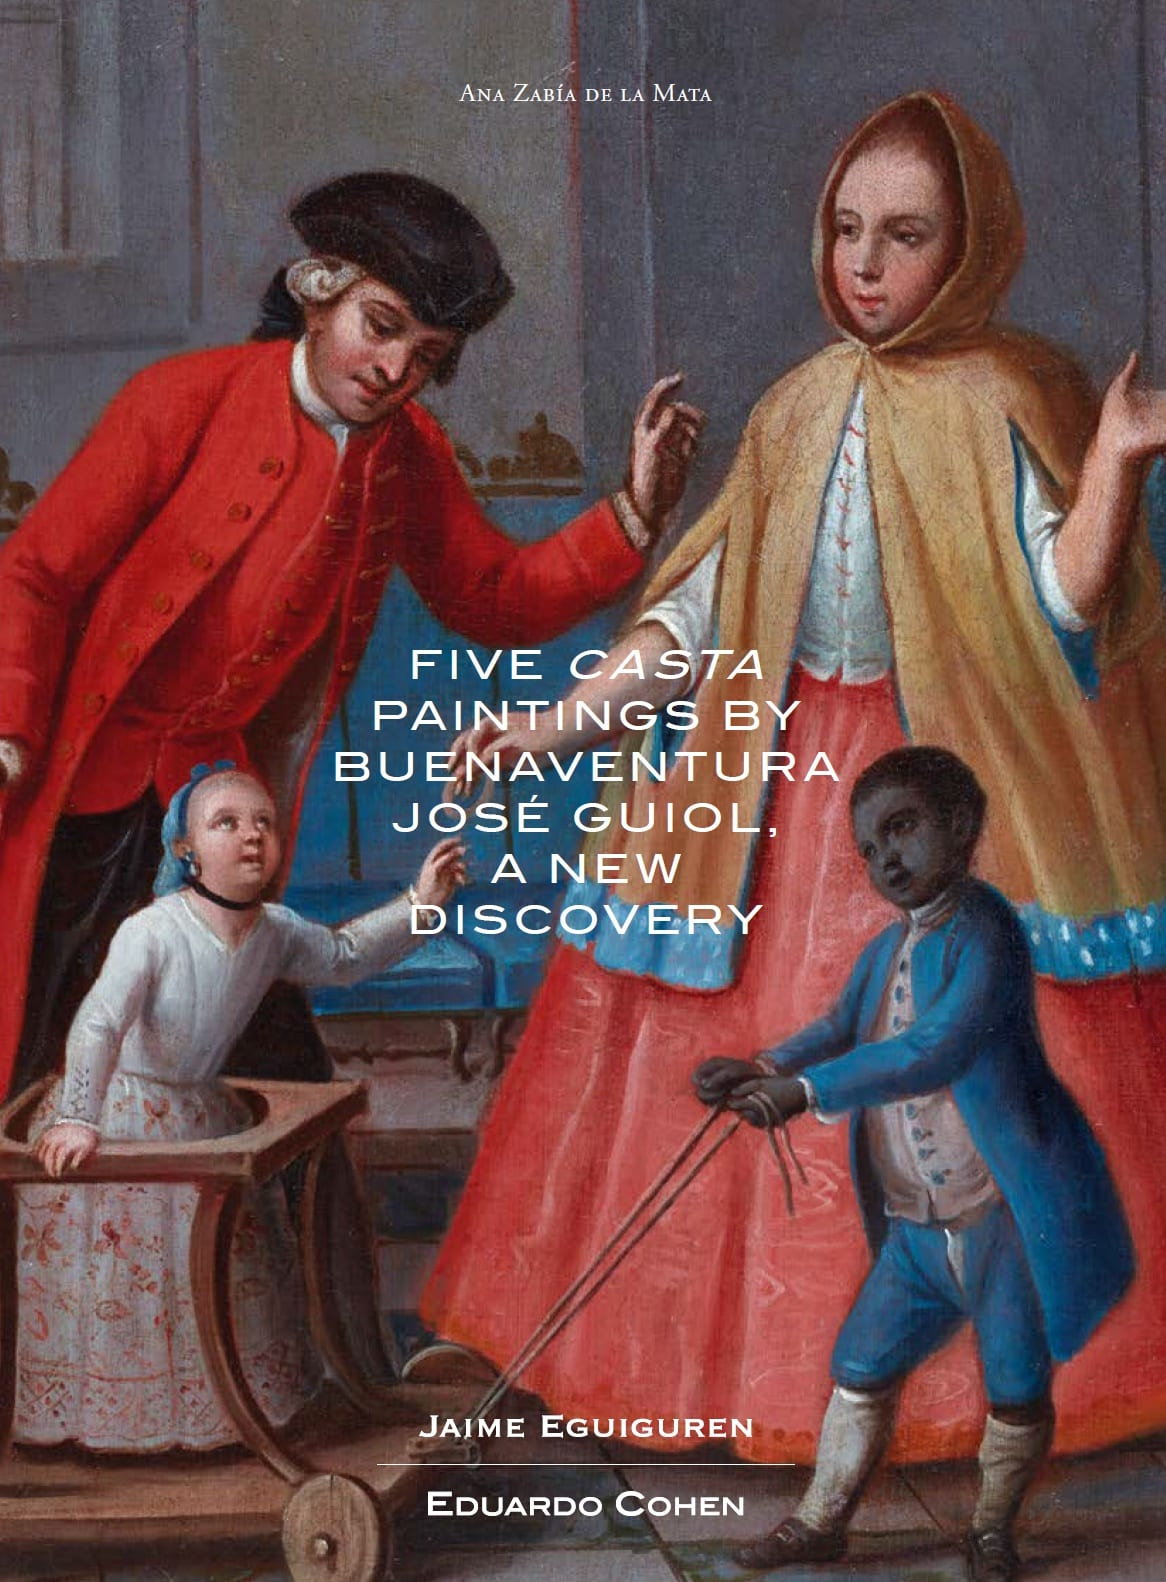 FIVE CASTA PAINTINGS BY BUENAVENTURA JOSÉ GUIOL, A New Discovery